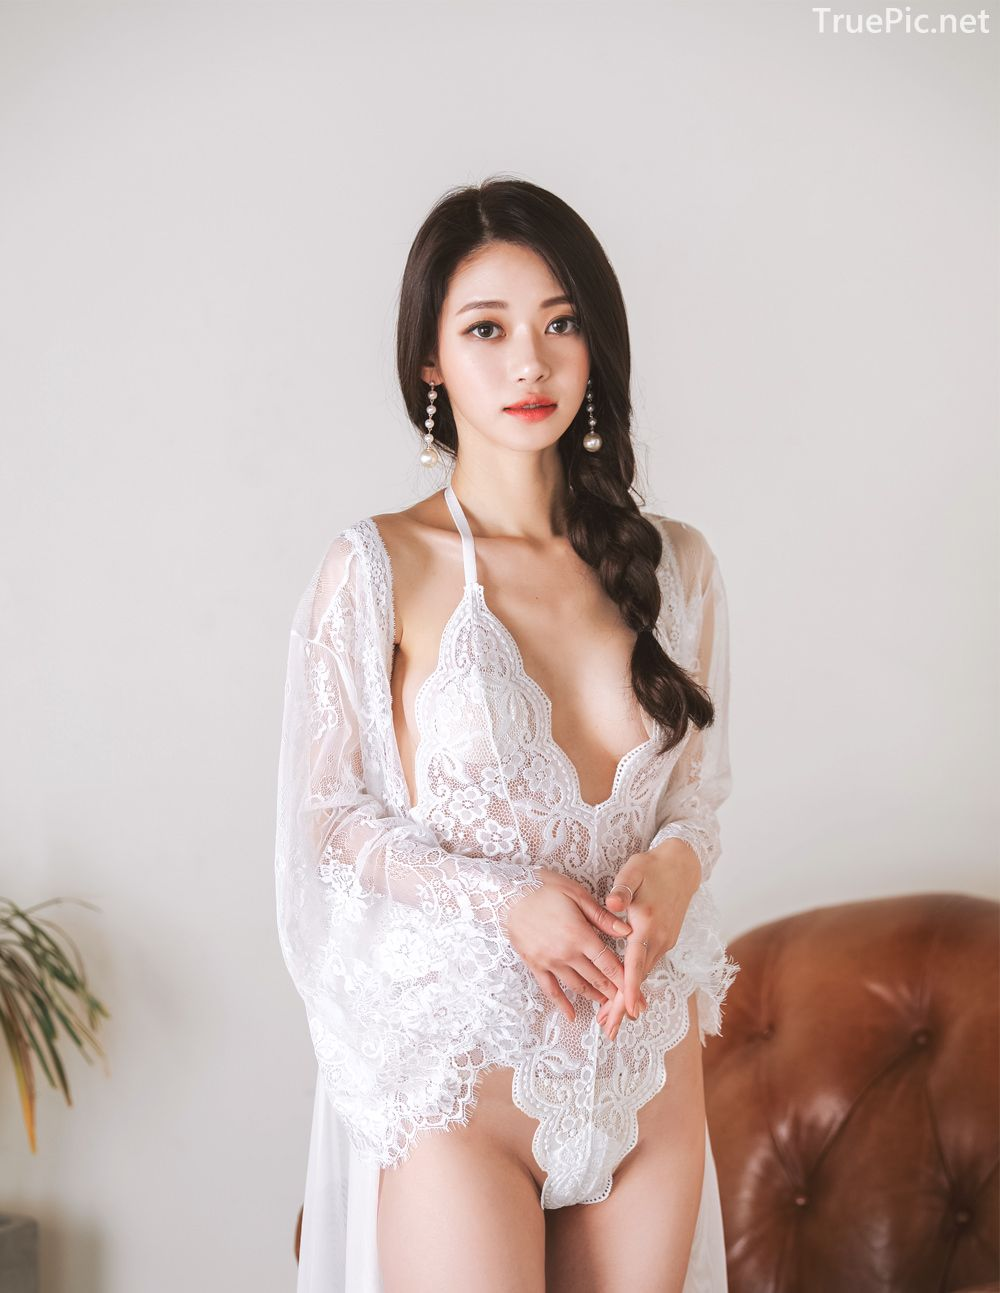 Korean Lingerie Model - Hee - Black and White Sexy Lingerie Collection - TruePic.net - Picture 7